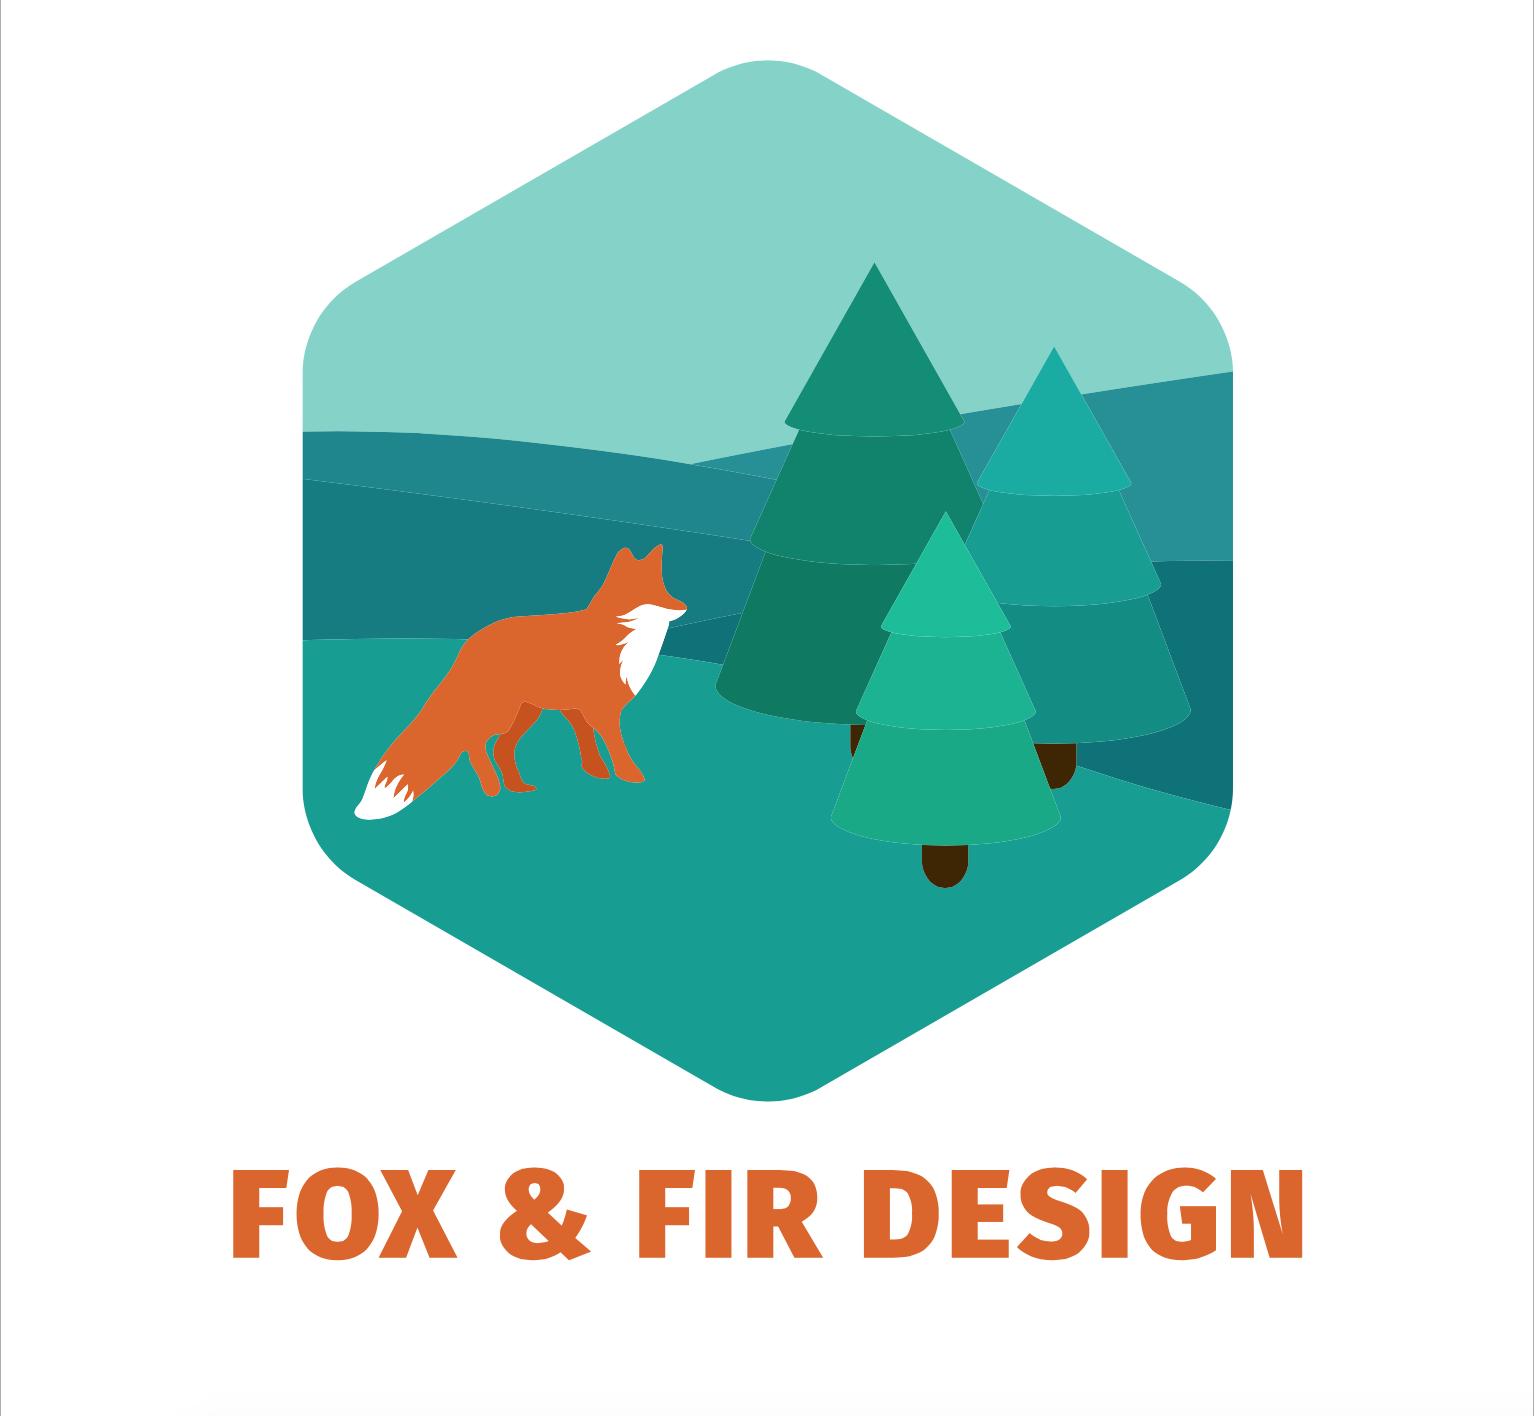 Fox & Fir Design